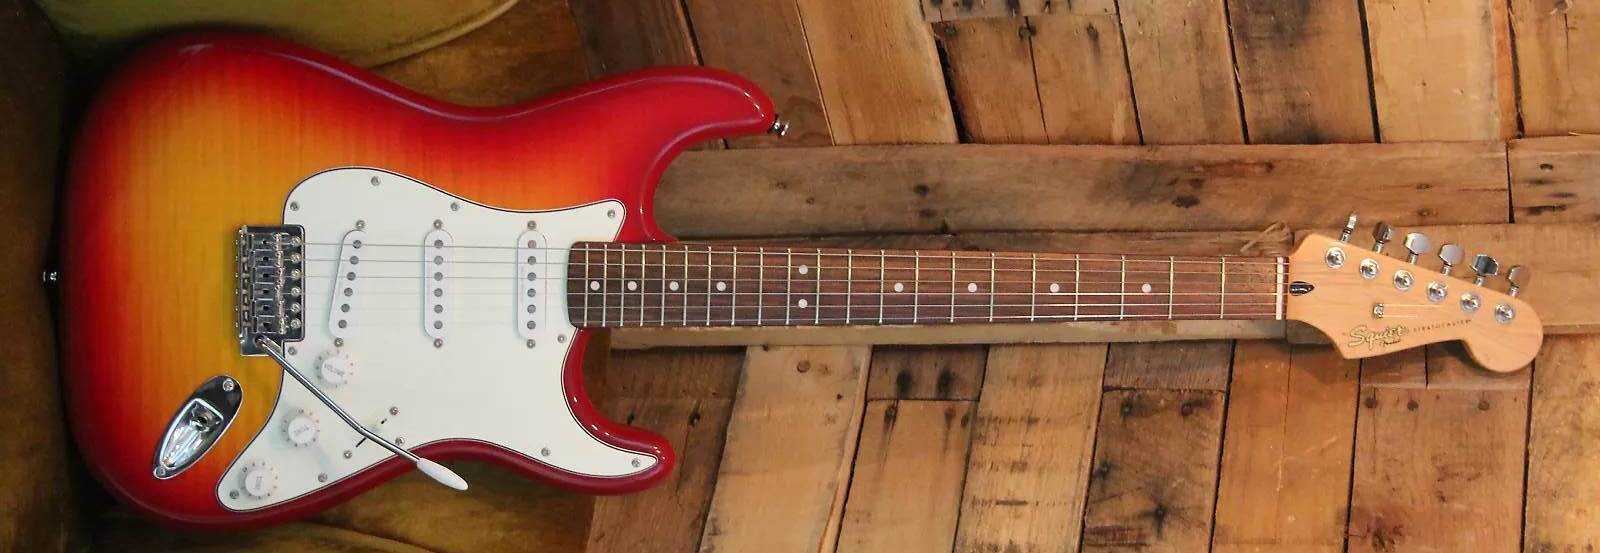 Vintage Modified Strat Made in India